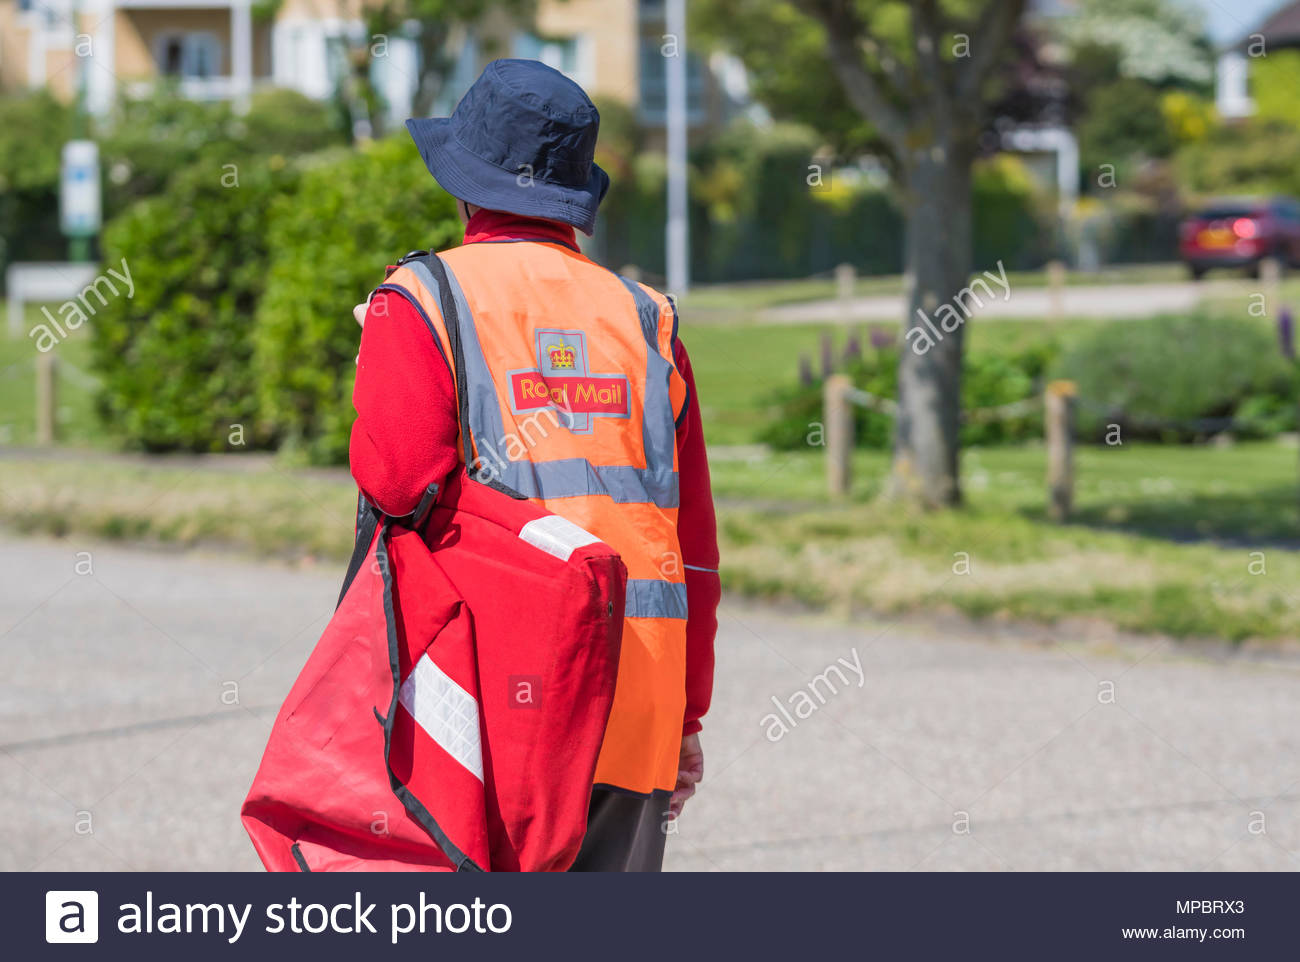 British Royal Mail Postman walking in a residential area carrying a red satchel of letters, for morning deliveries in West Sussex, England, UK. - Stock Image